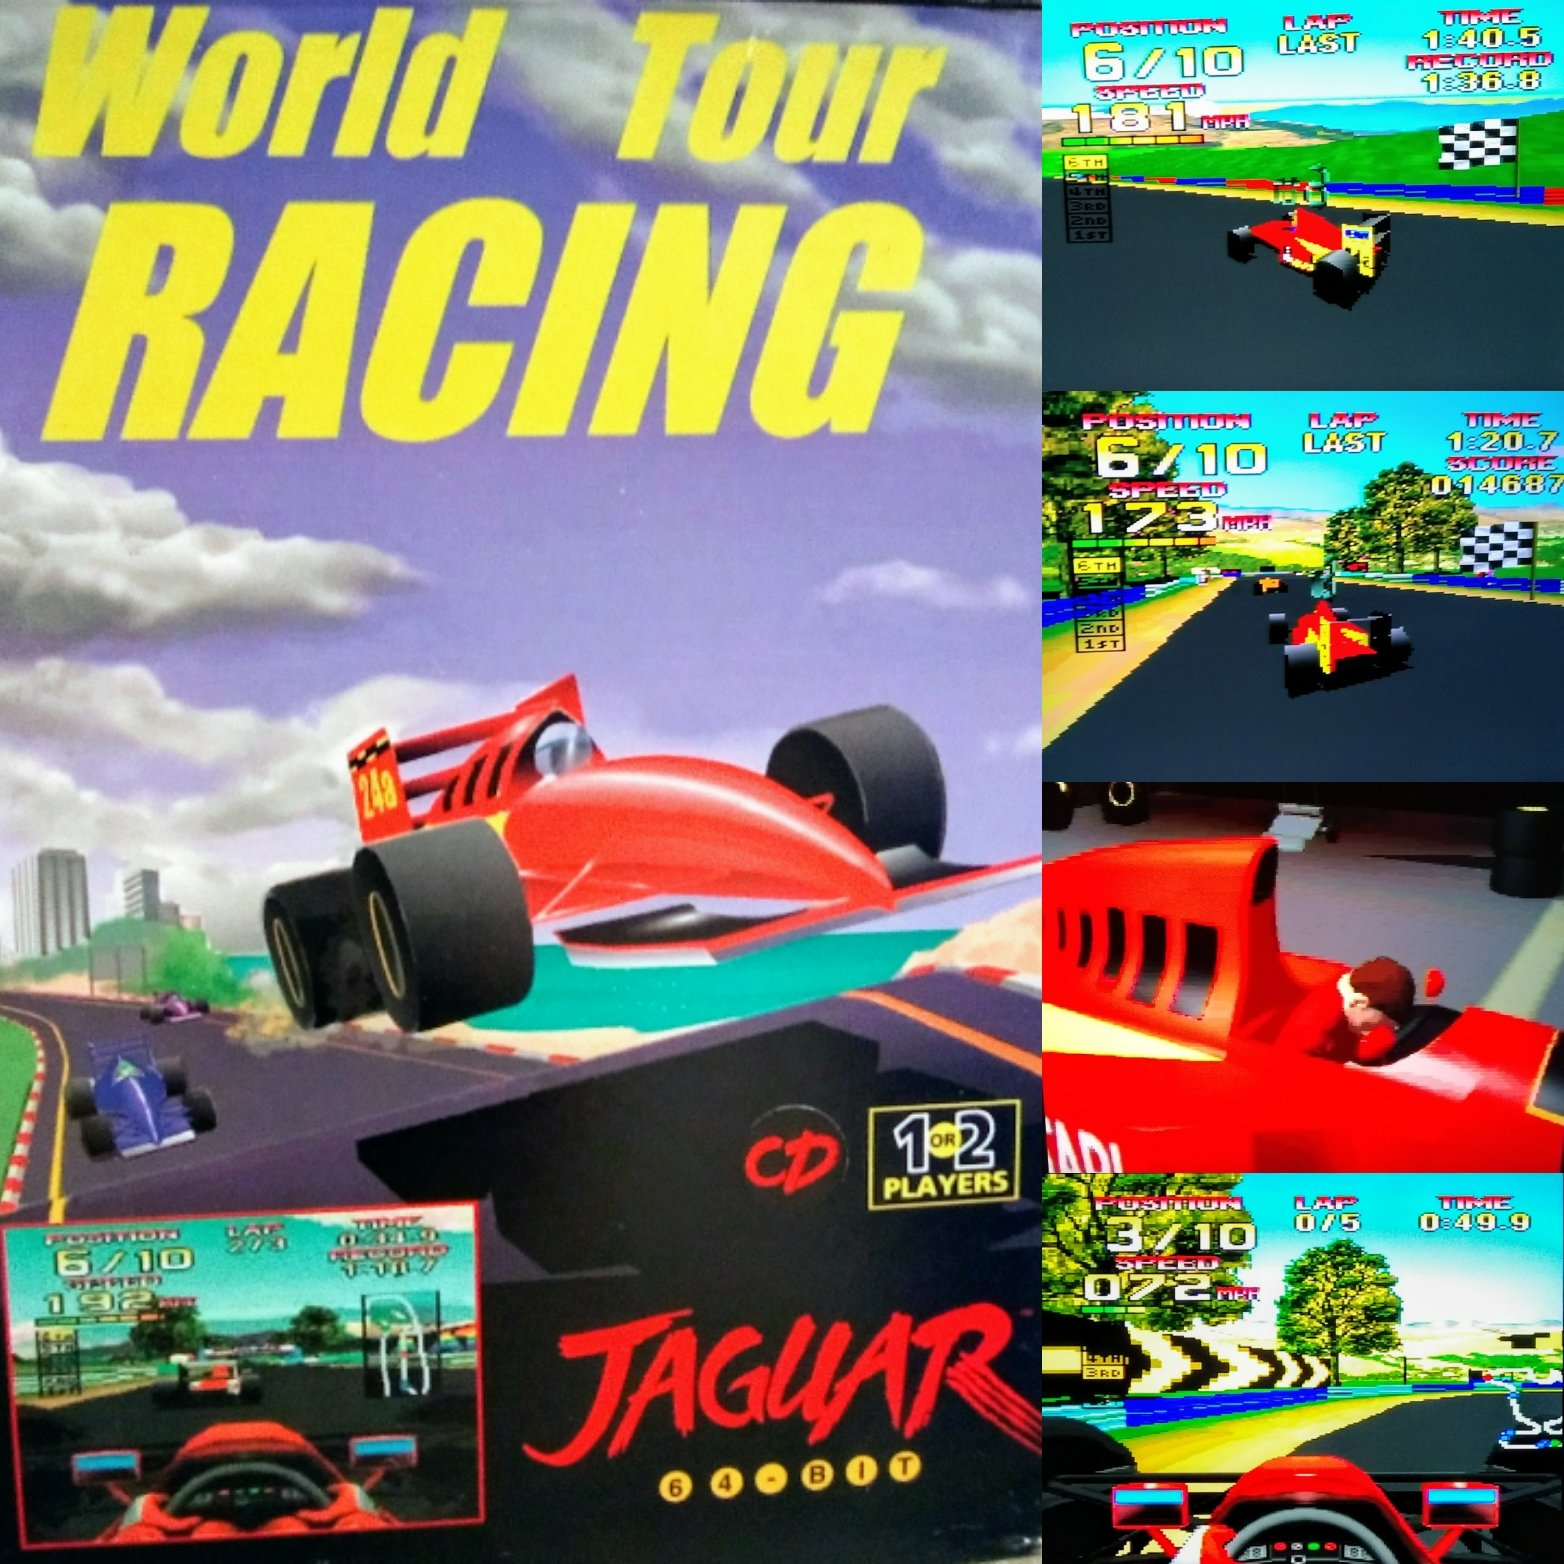 011 - World Tour Racing